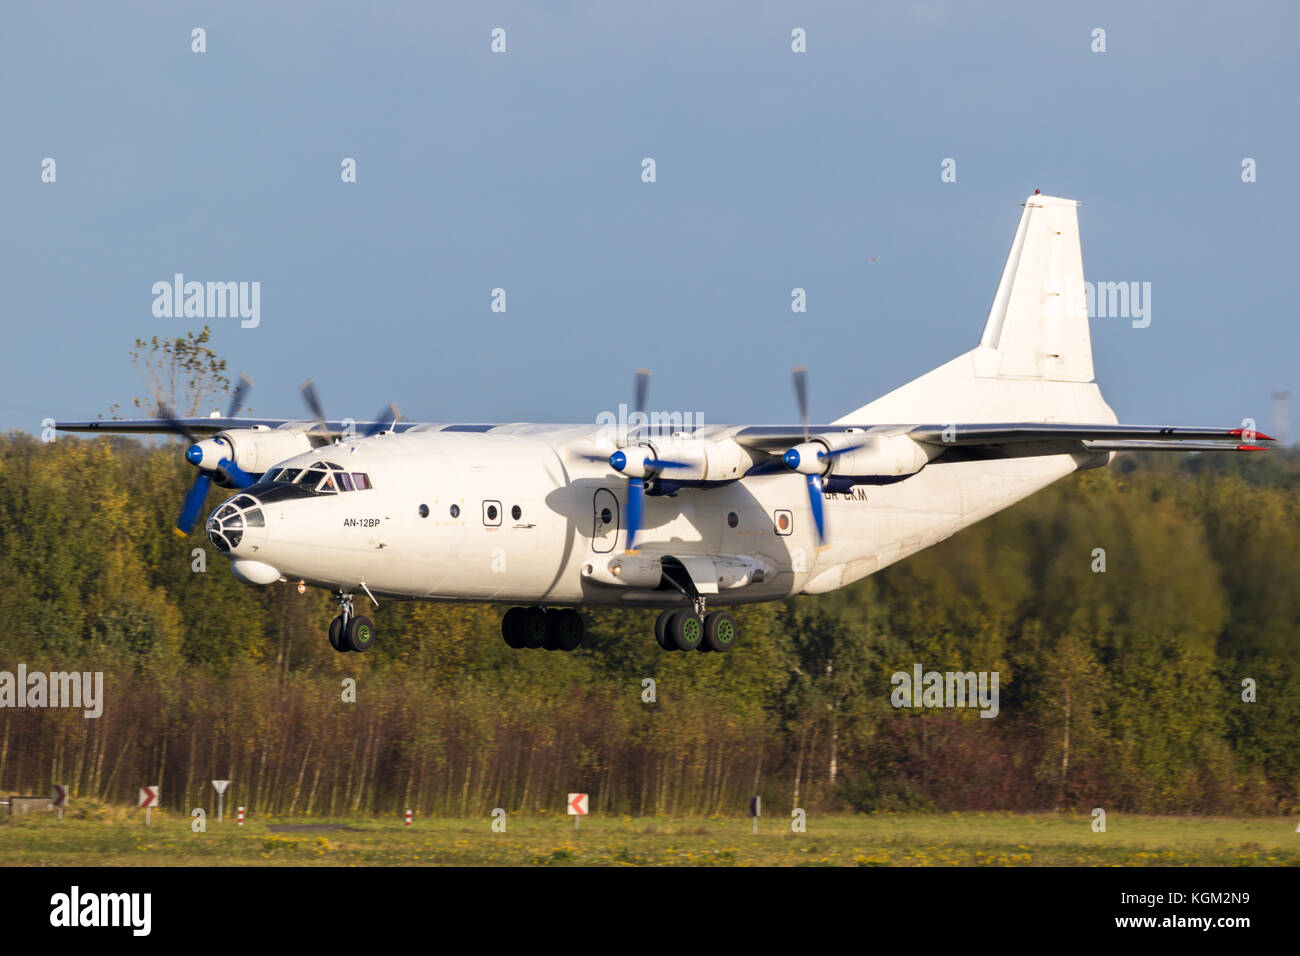 EINDHOVEN, THE NETHERLANDS - OCT 27, 2017: White Antonov An-12 cargo plane landing on Eindhoven airport - Stock Image